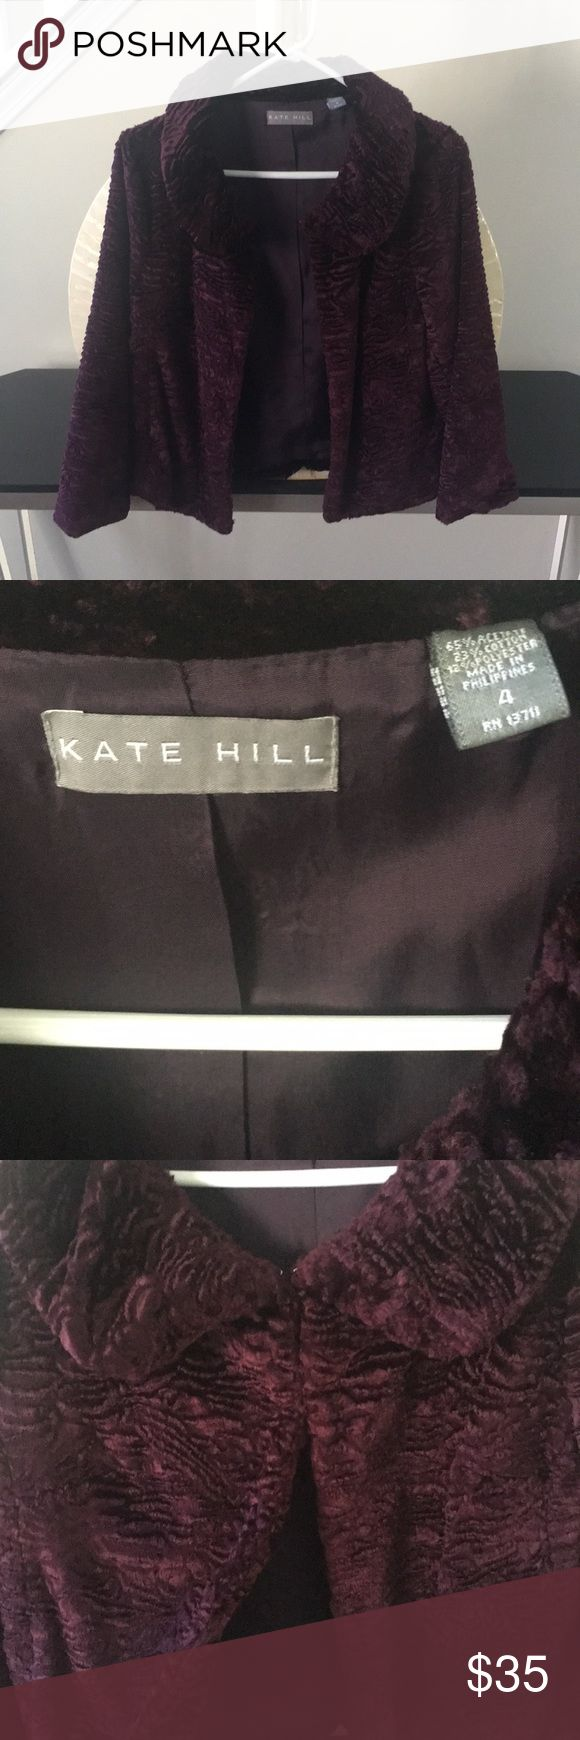 Kate Hill purple faux fur coat In excellent condition with no flaws! Super soft dark purple faux fur coat with eyelet clasps. Thanks for looking and make an offer.💕 Kate Hill Jackets & Coats